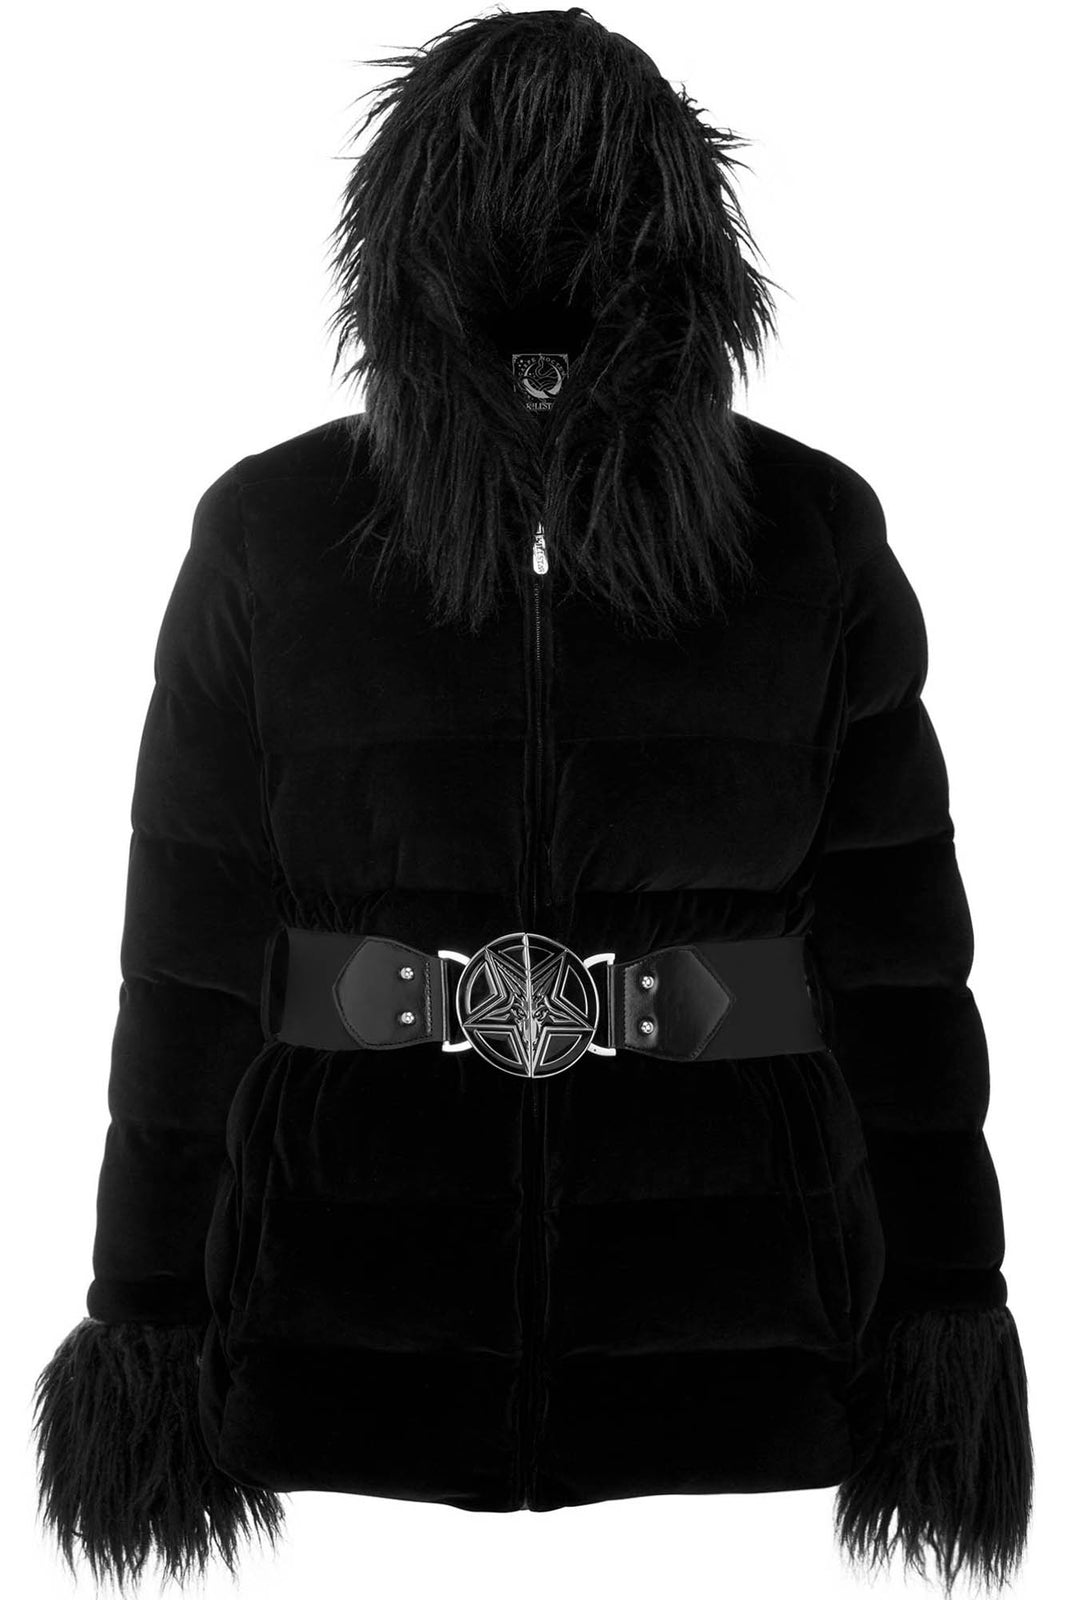 Gates Of Hell Hooded Coat [PLUS]